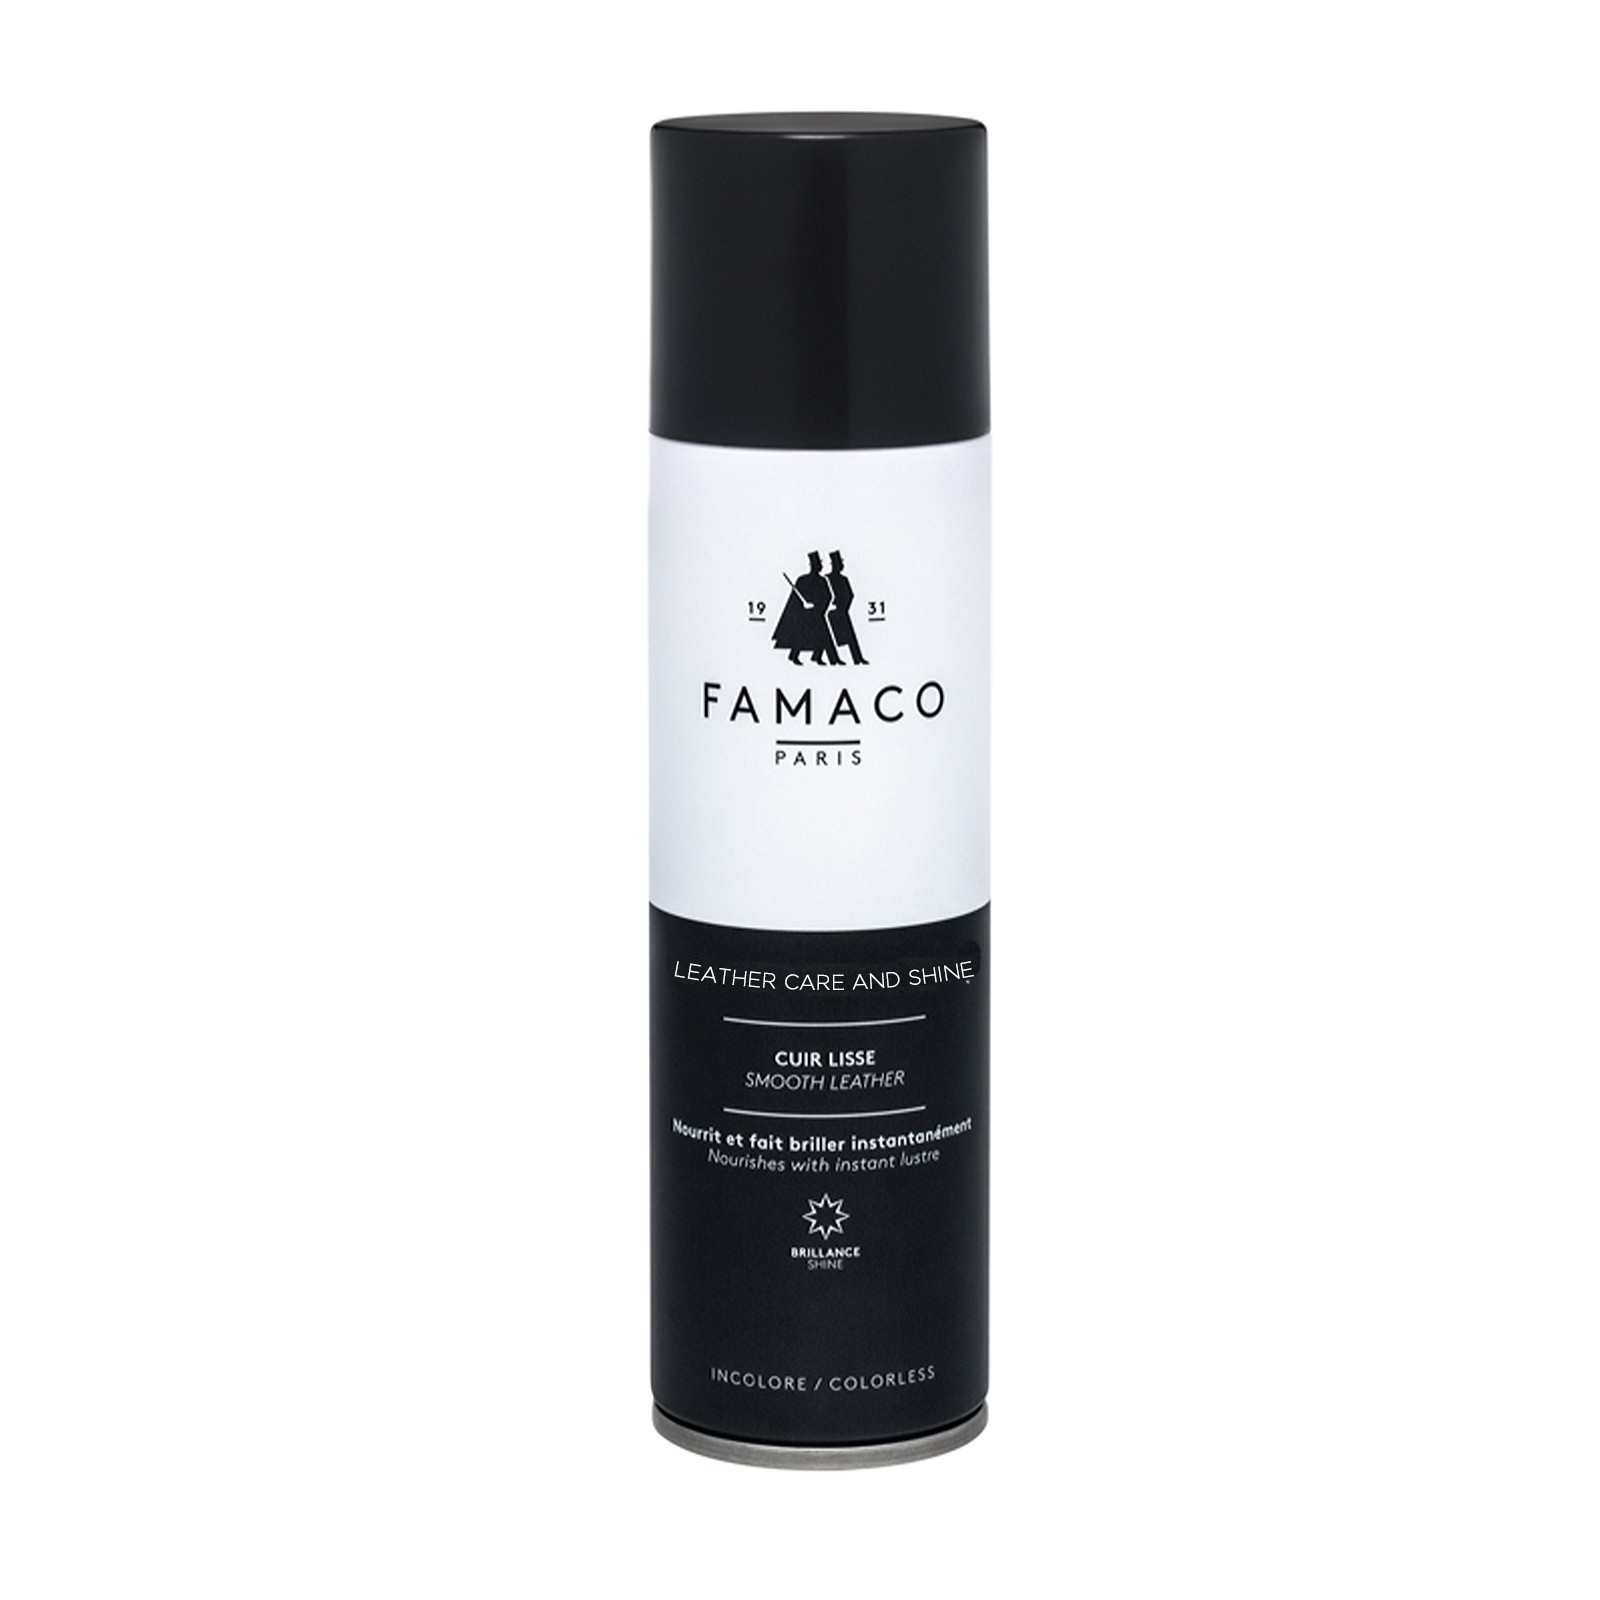 Famaco Leather Care And Shine 250ml Spray